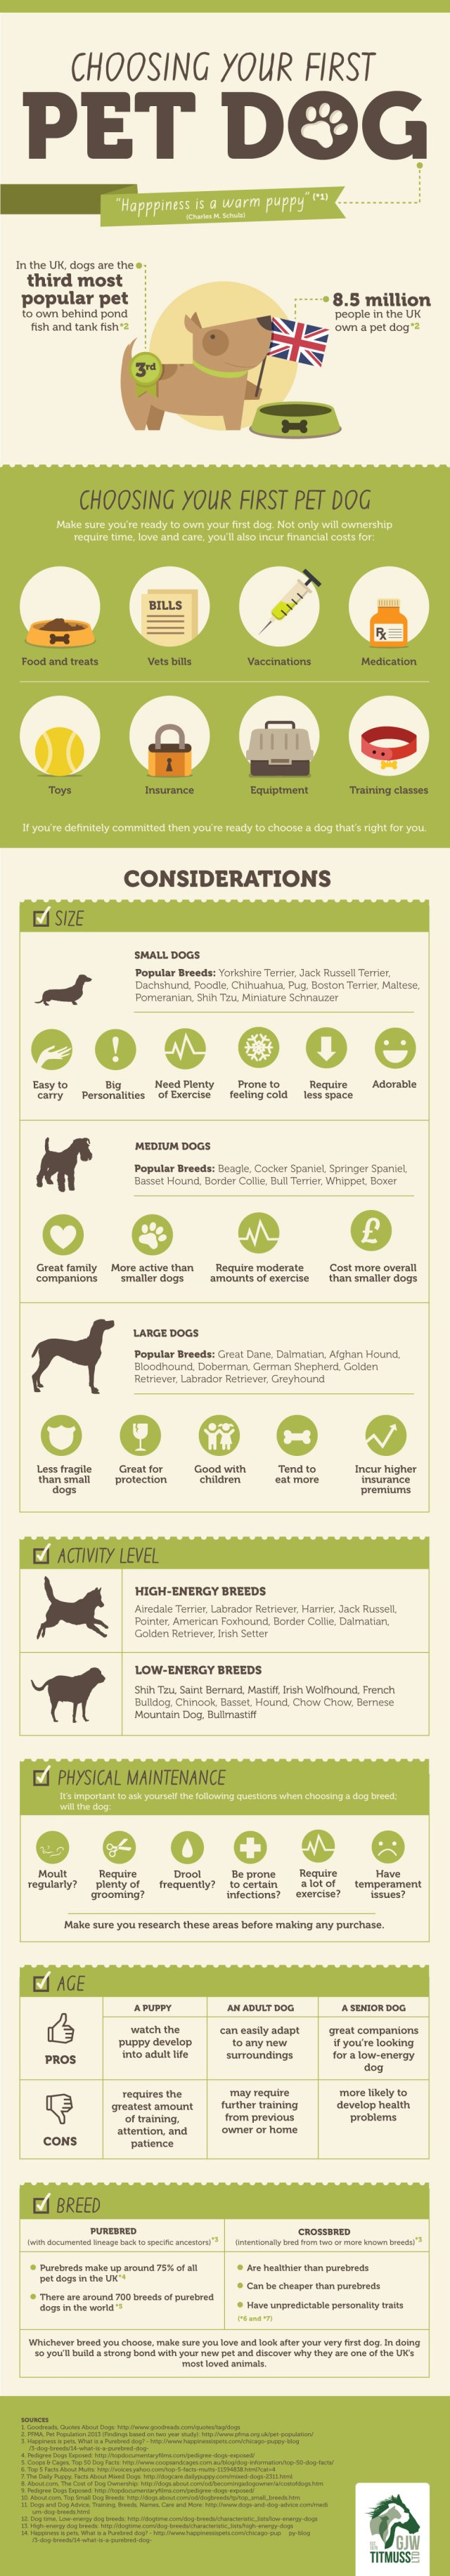 primal canine choosing your first dog infographic